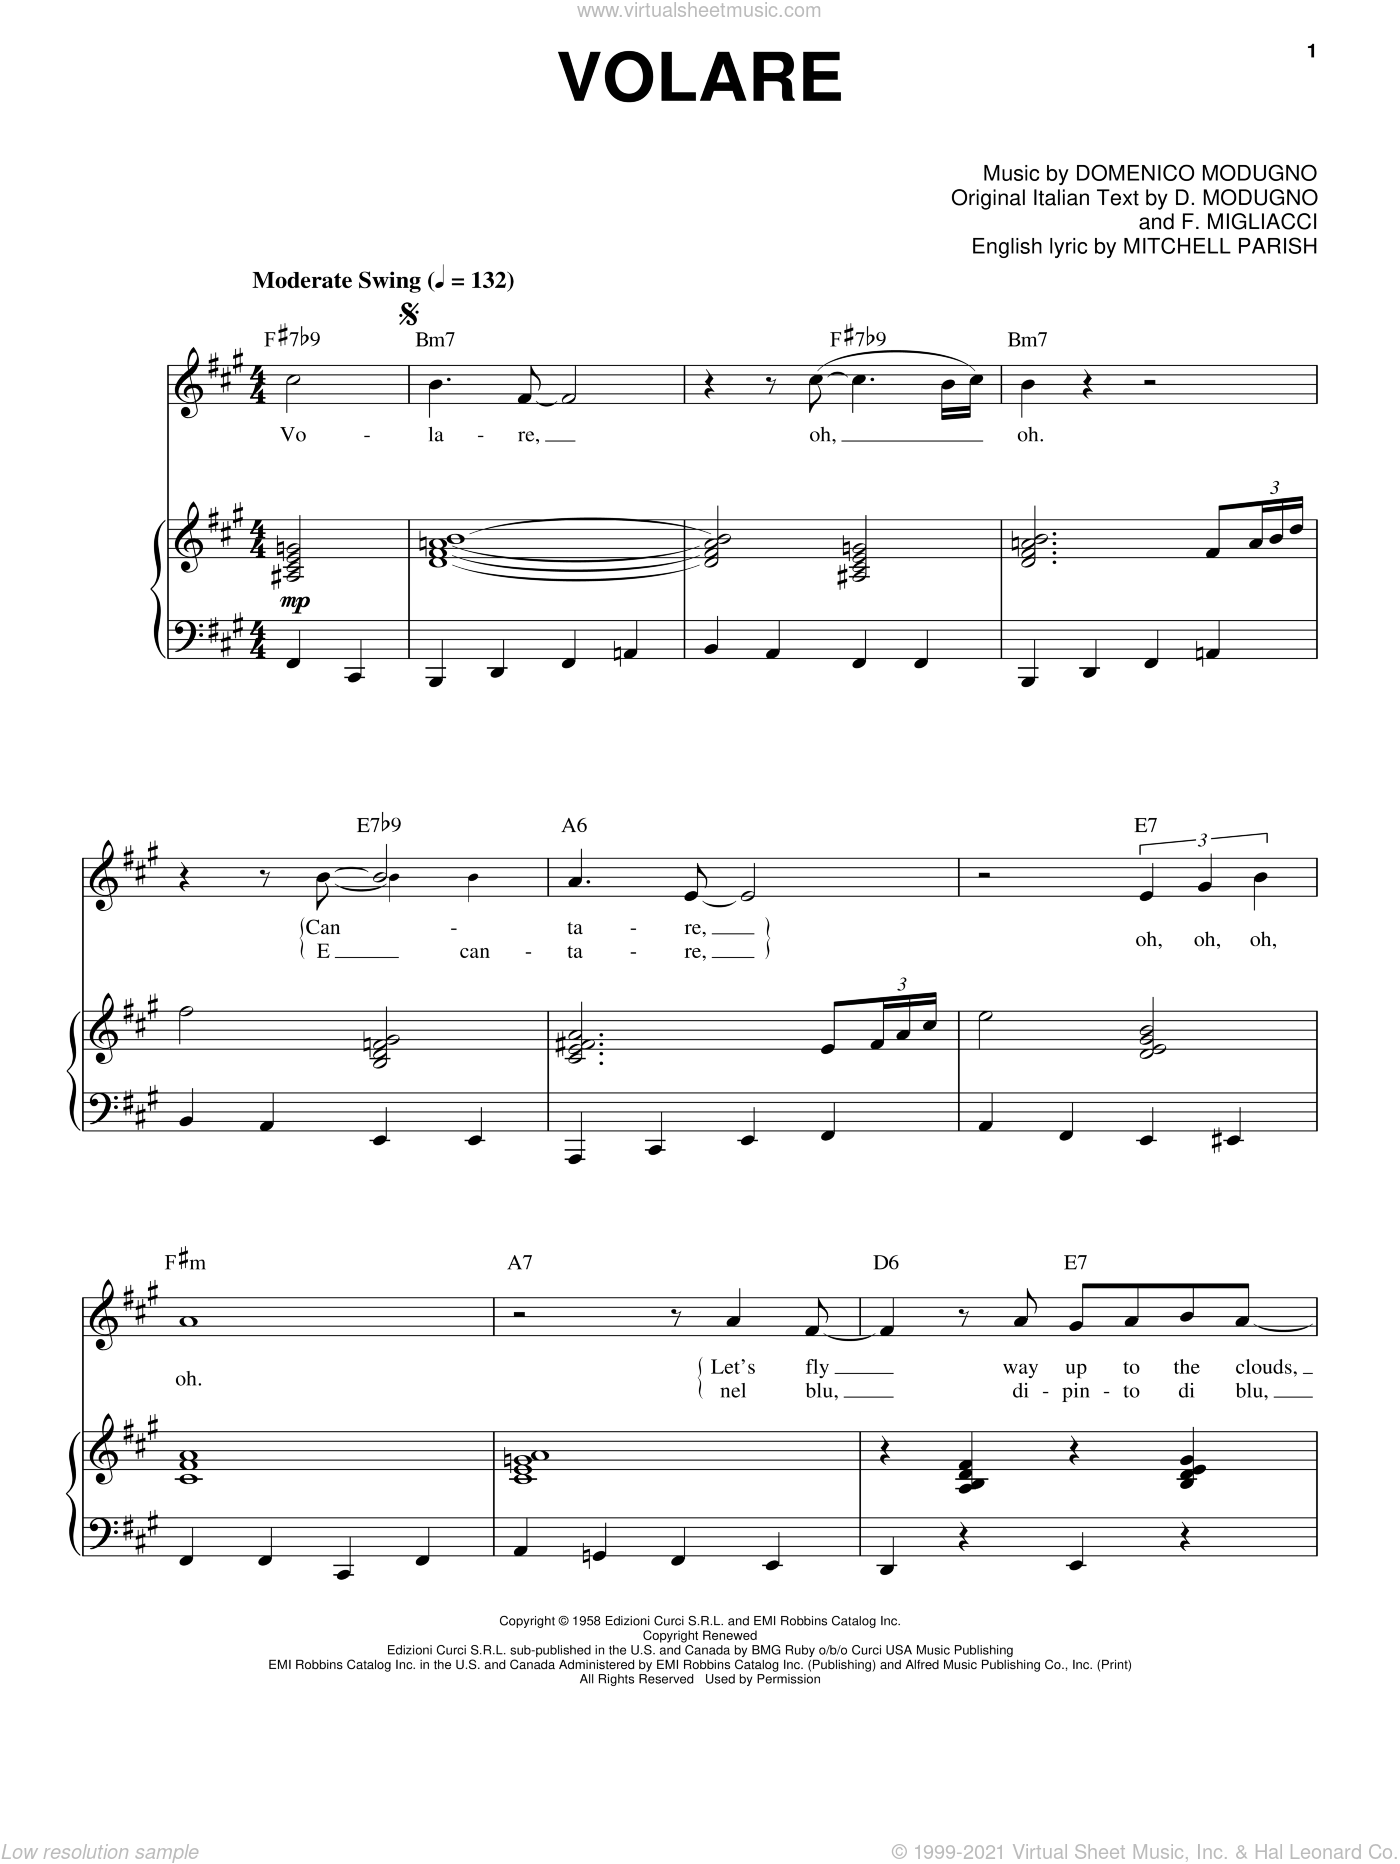 Volare (Nel Blu, Dipinto Di Blu) sheet music for voice and piano by Mitchell Parish